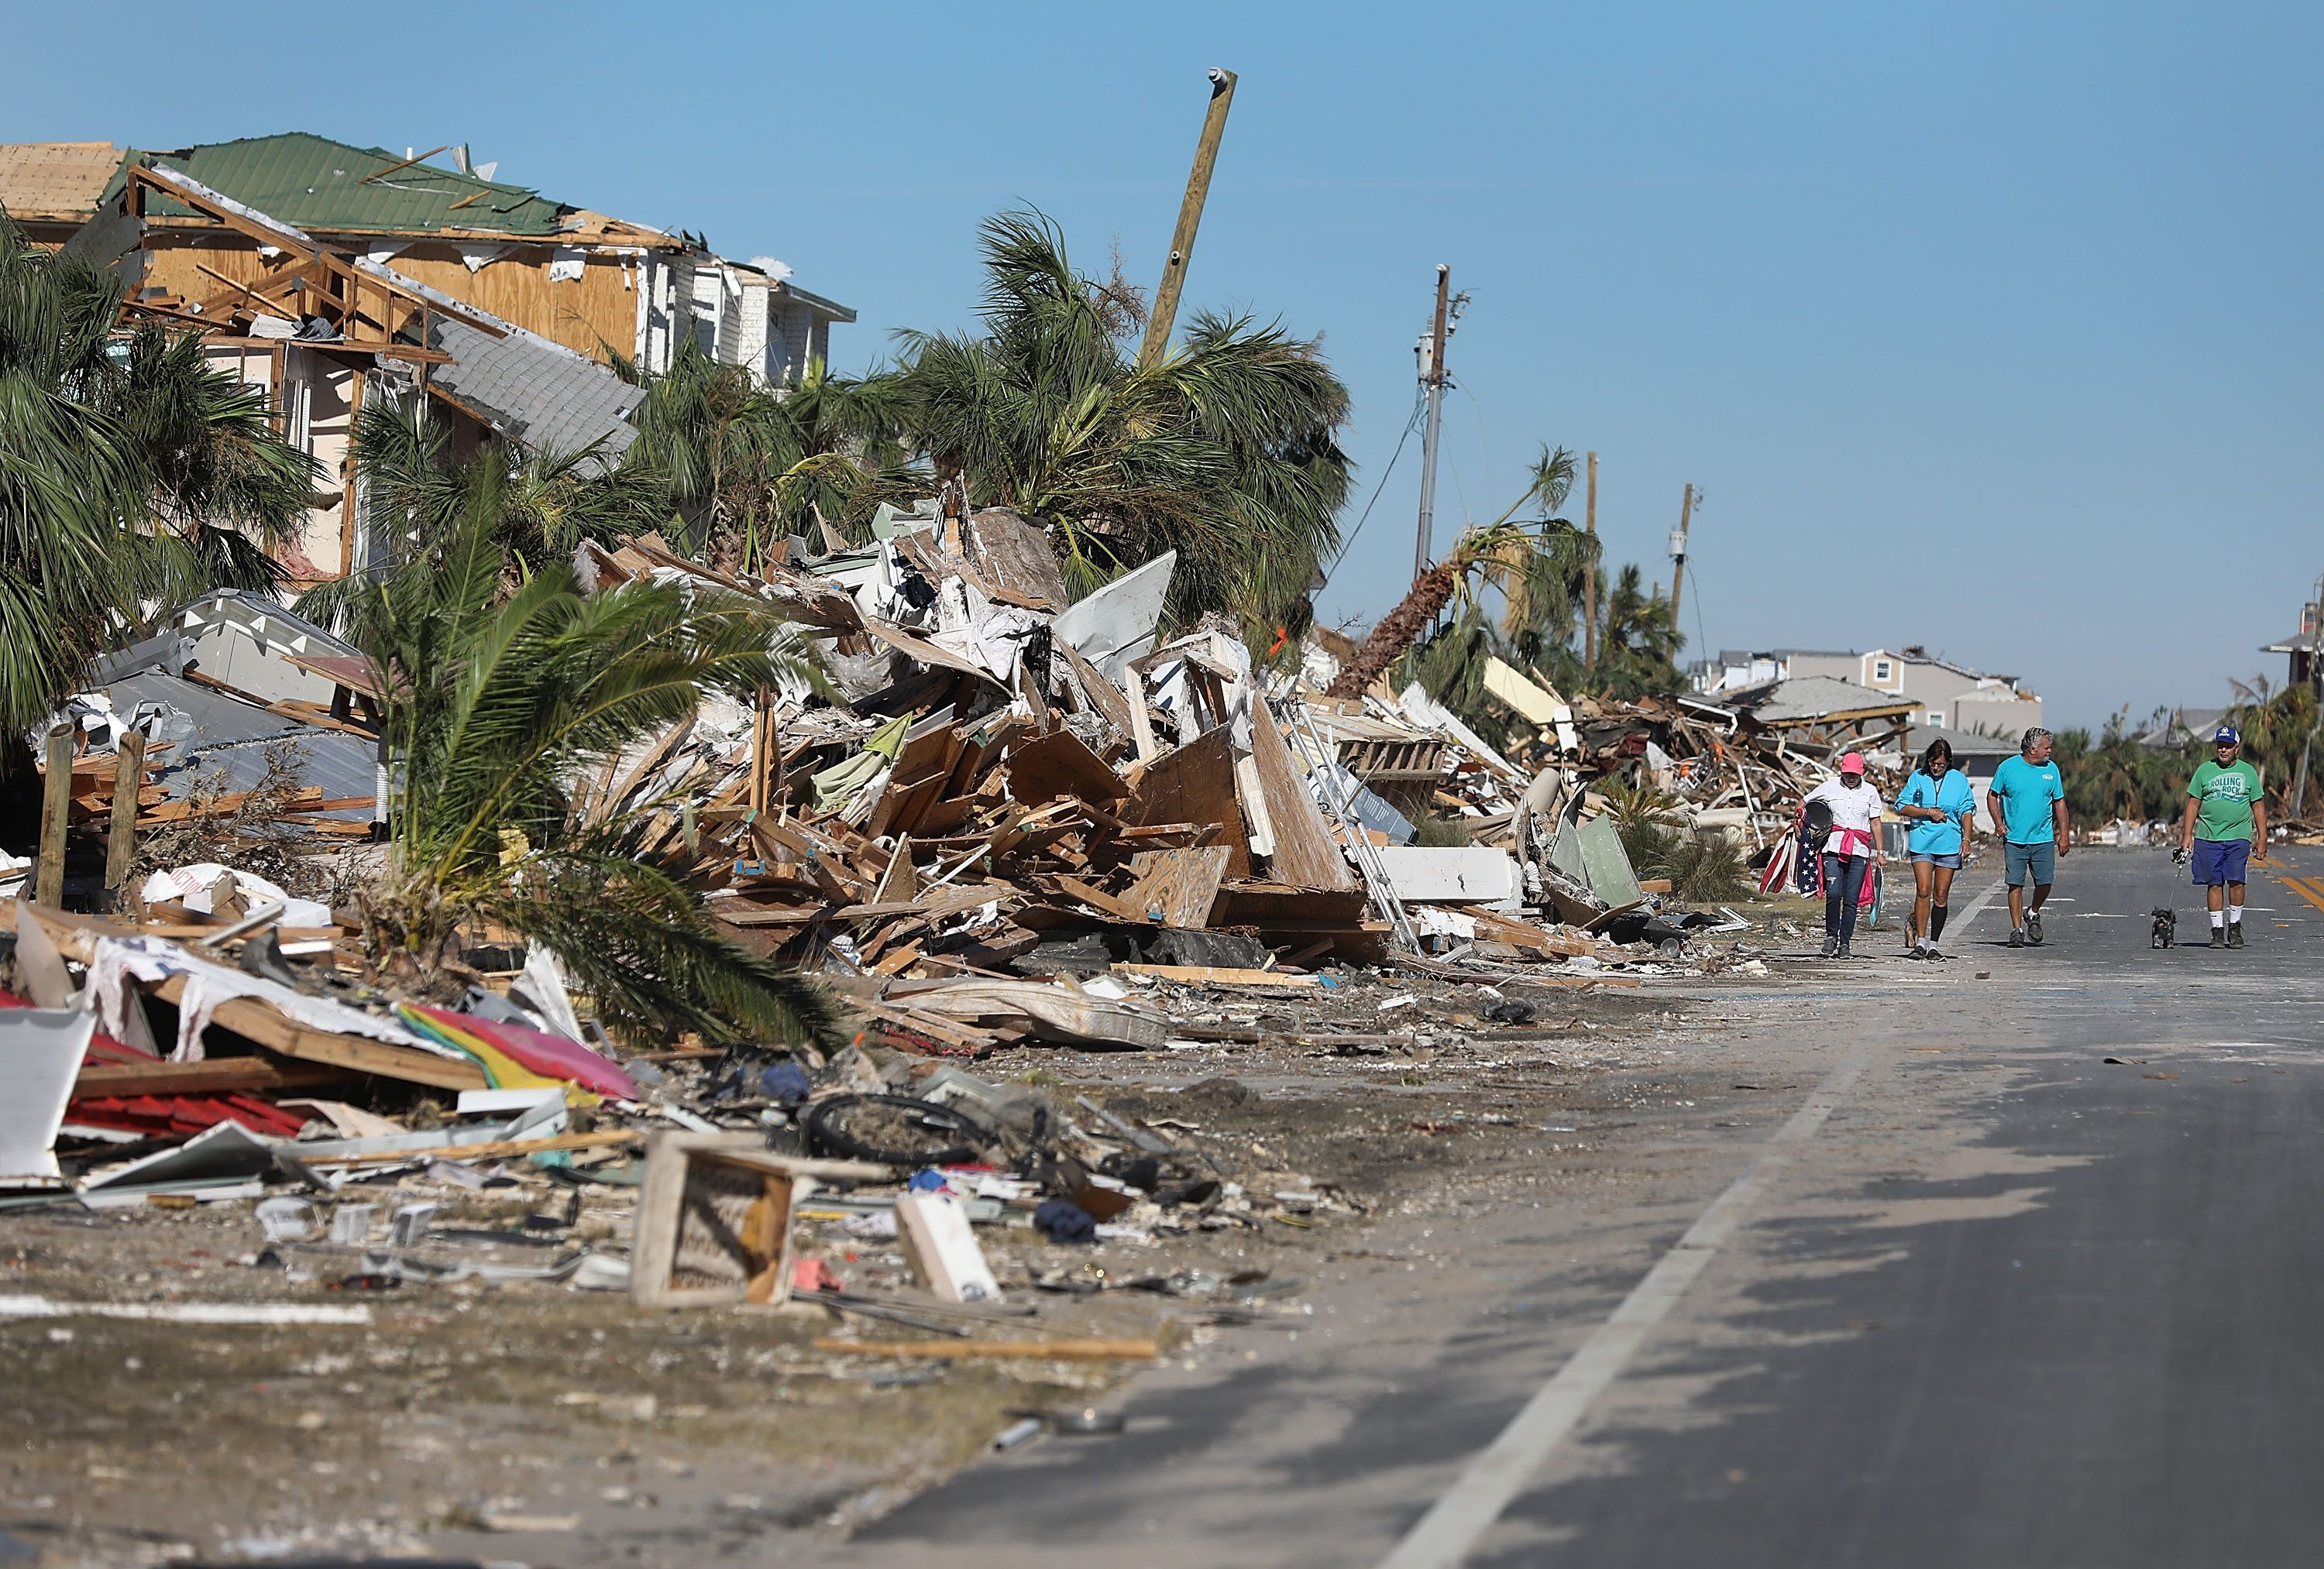 MEXICO BEACH, FL - OCTOBER 12:  People walk along a debris strewn street after Hurricane Michael passed through the area on October 12, 2018 in Mexico Beach, Florida.  The hurricane hit the panhandle area with category 4 winds causing major damage.  (Photo by Joe Raedle/Getty Images)